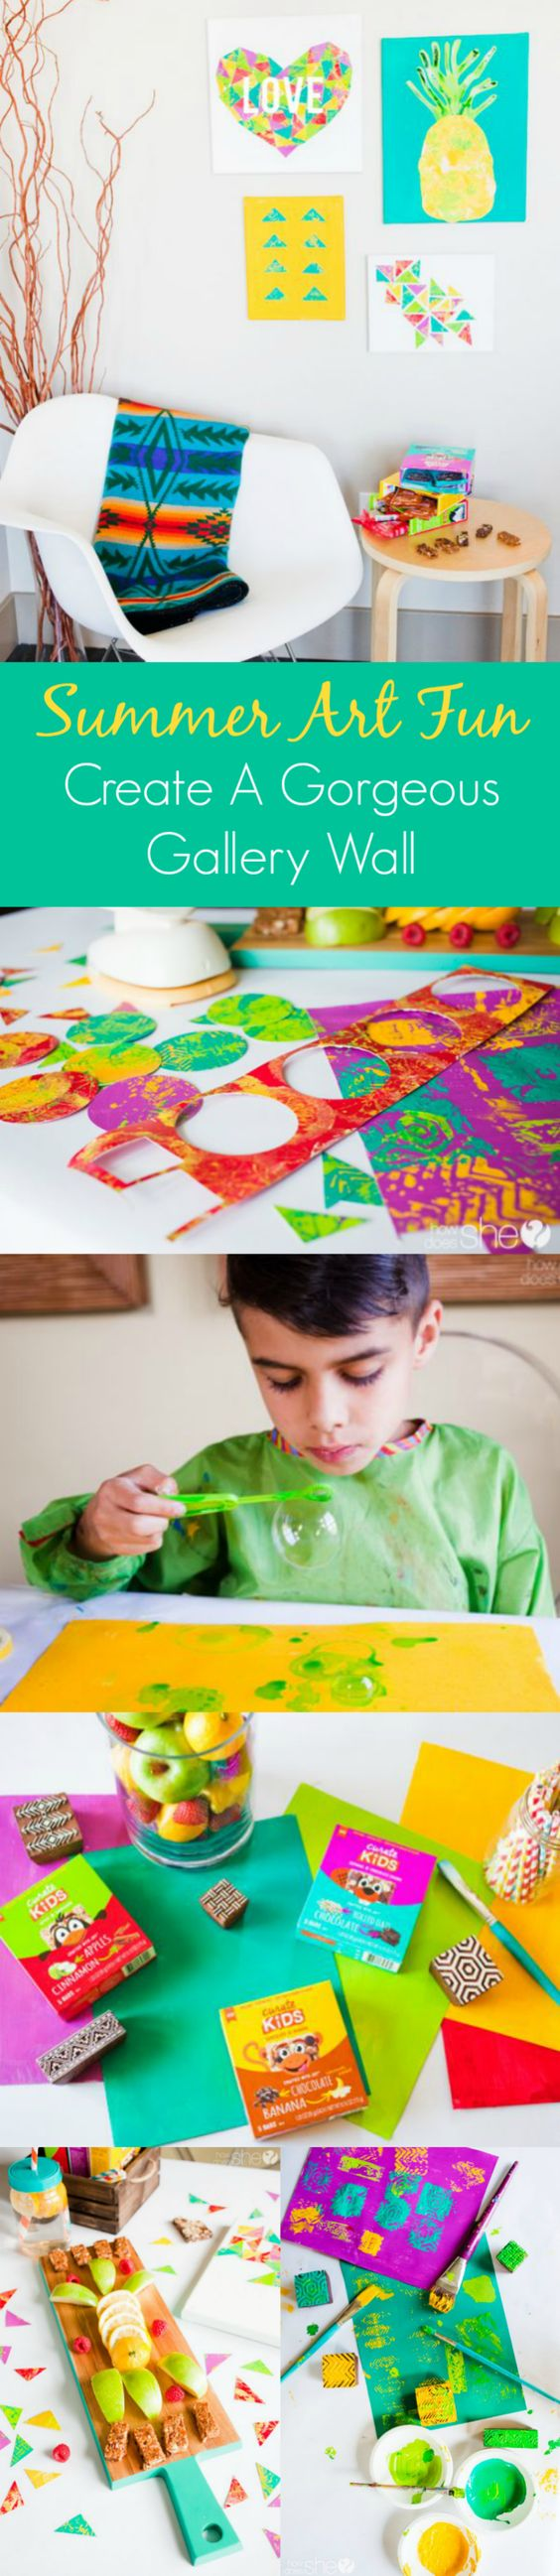 """Four fun painting projects for kids. Plus, turn their """"not-so-perfect"""" art into a gorgeous gallery wall that is truly display-worthy! Great ideas for summer fun with @CurateSnacks and @HowDoesShe. TasteCurate AD"""